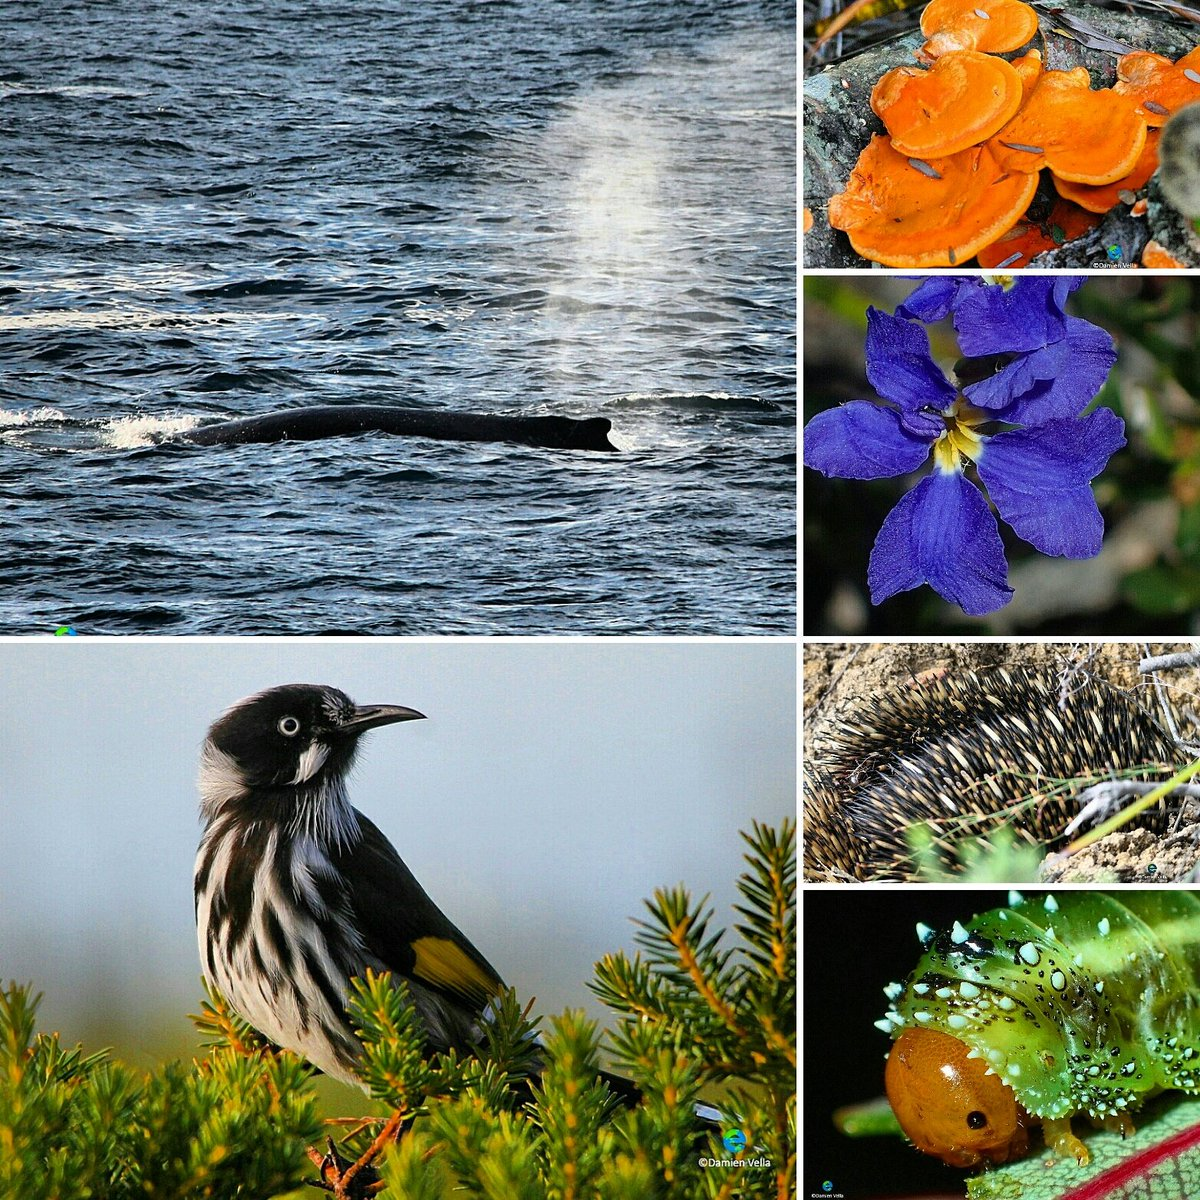 #Conserve#natural areas and you may be rewarded. Definitely enjoying the start to my weekend #wildlife#conservation #animals #fungi #plants <br>http://pic.twitter.com/3Fhzy7LmjJ